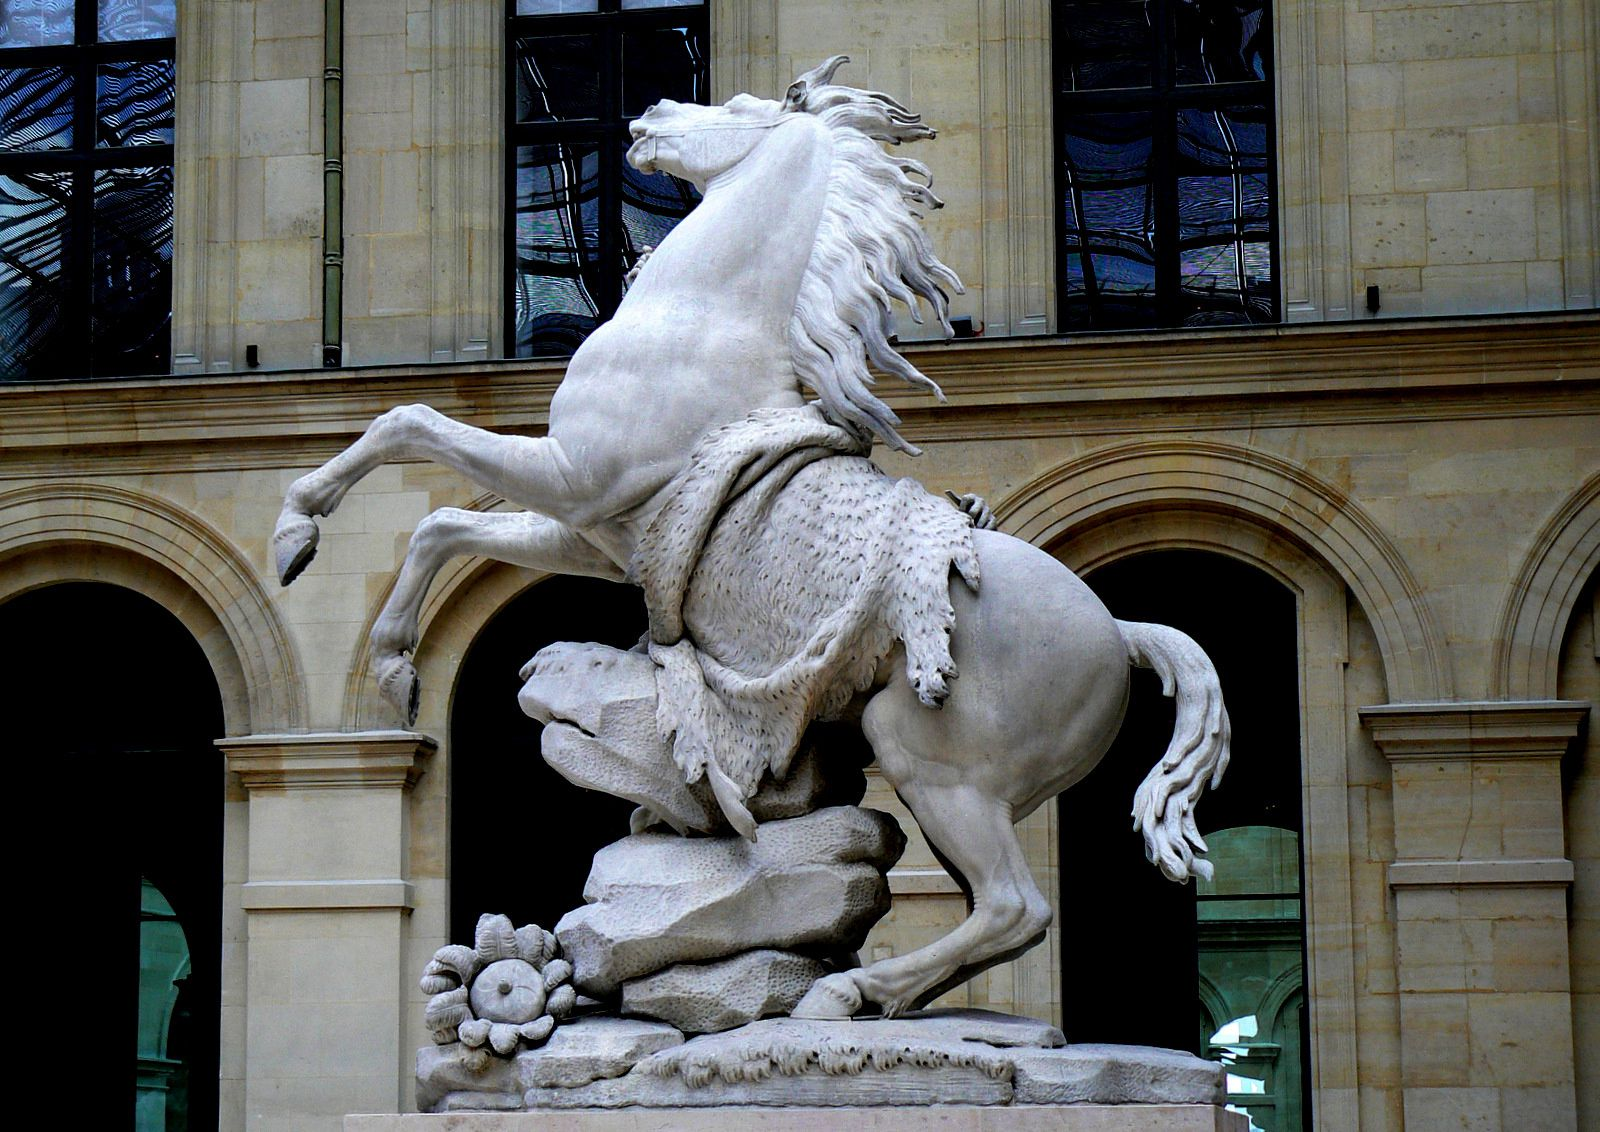 Les Chevaux de Marly, Cour Marly (Louvre)